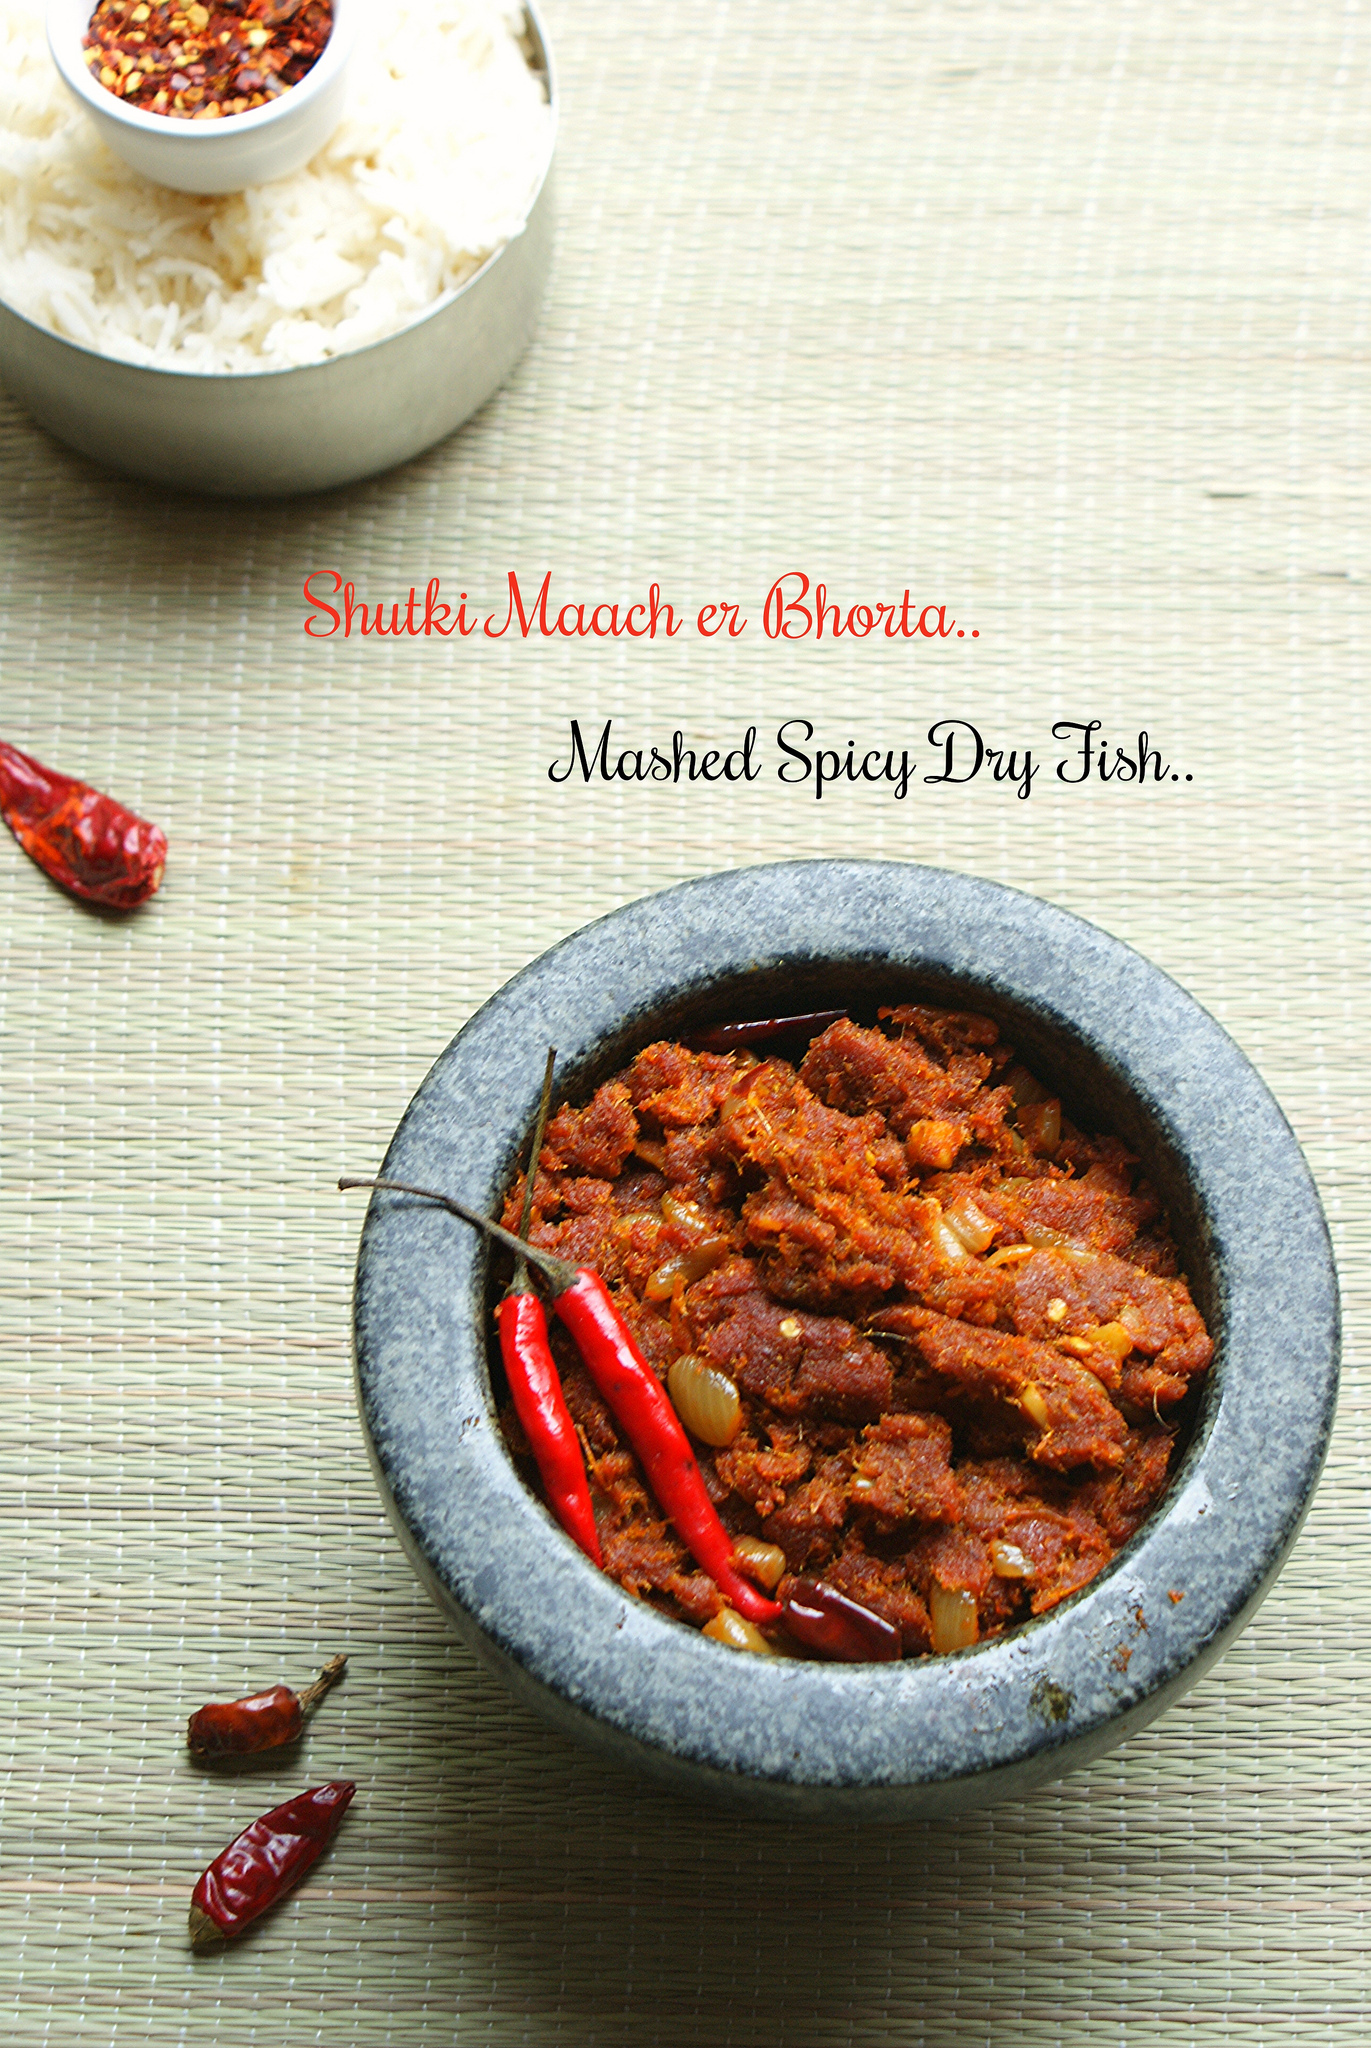 Shutki maach er bhorta mashed spicy dry fish is dry for Dry fish recipe